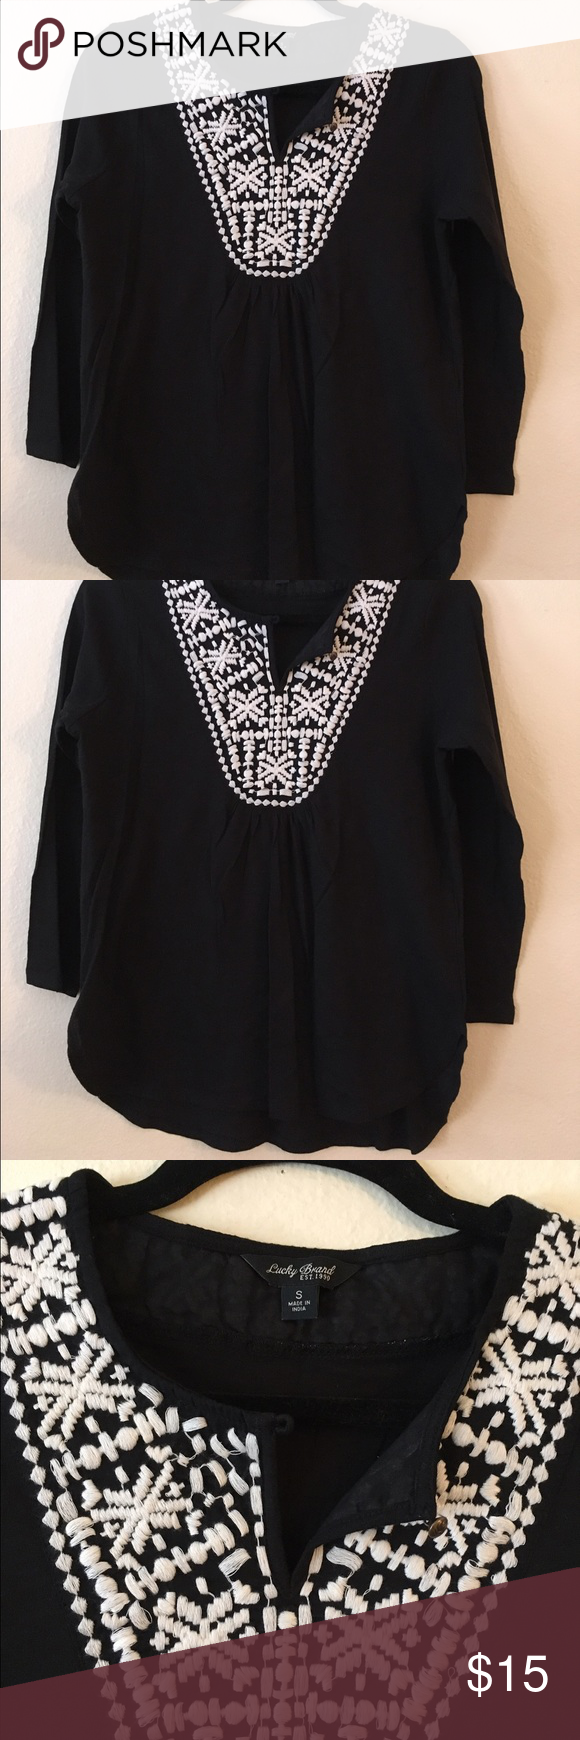 Lucky Brand 3/4 sleeve embroidered top Soft 3/4 sleeve top with embroidered detail. Lucky Brand Tops Tunics